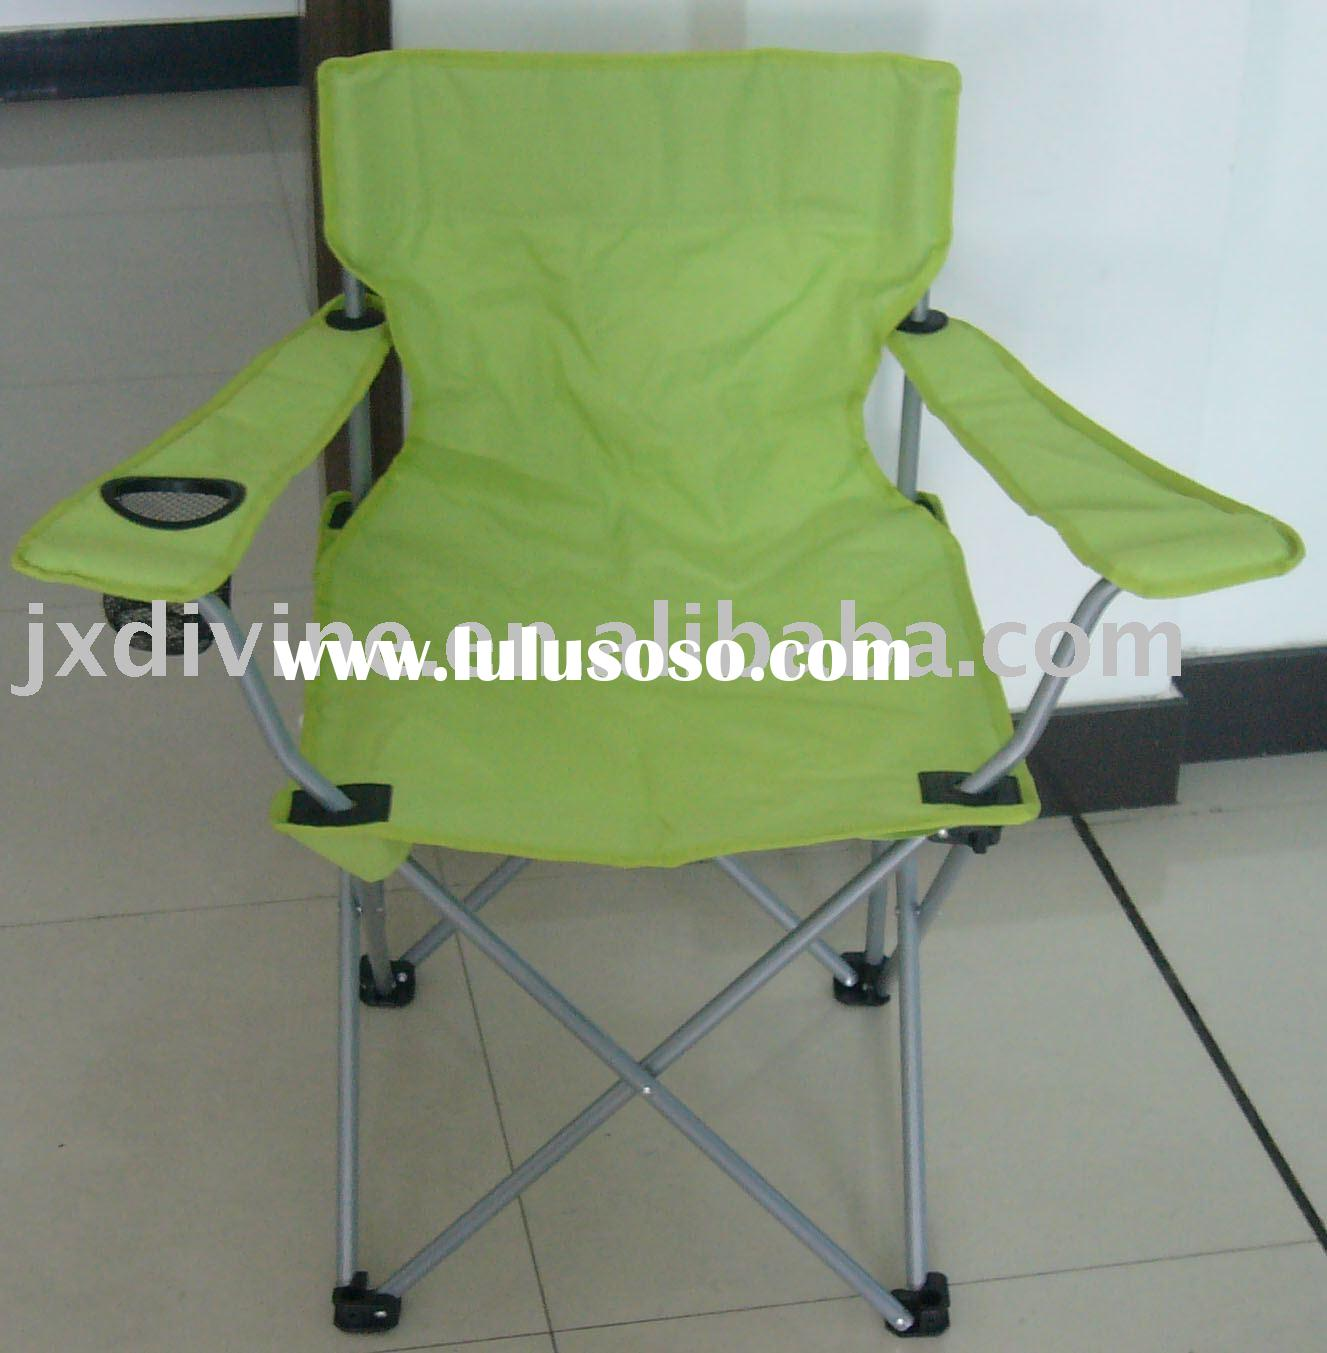 Quad chair with arms